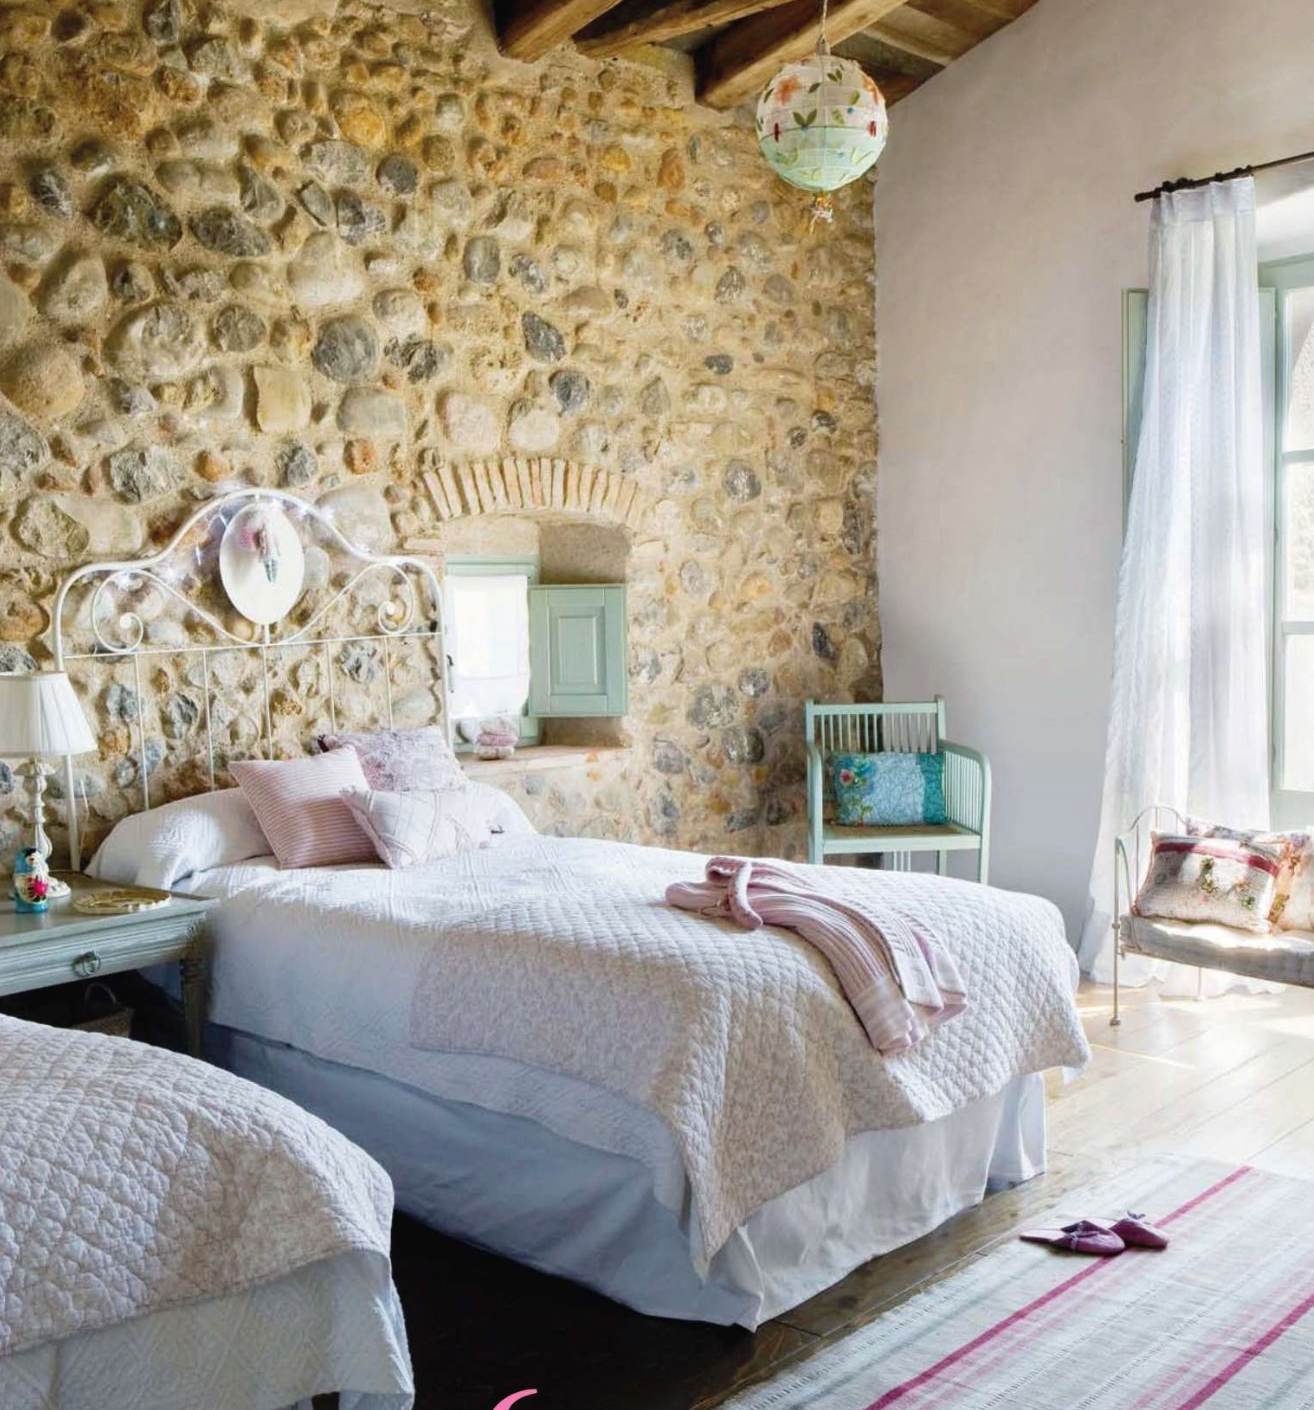 Interior Stone Wall exposed stone walls in interior design: 13 decorating tips and